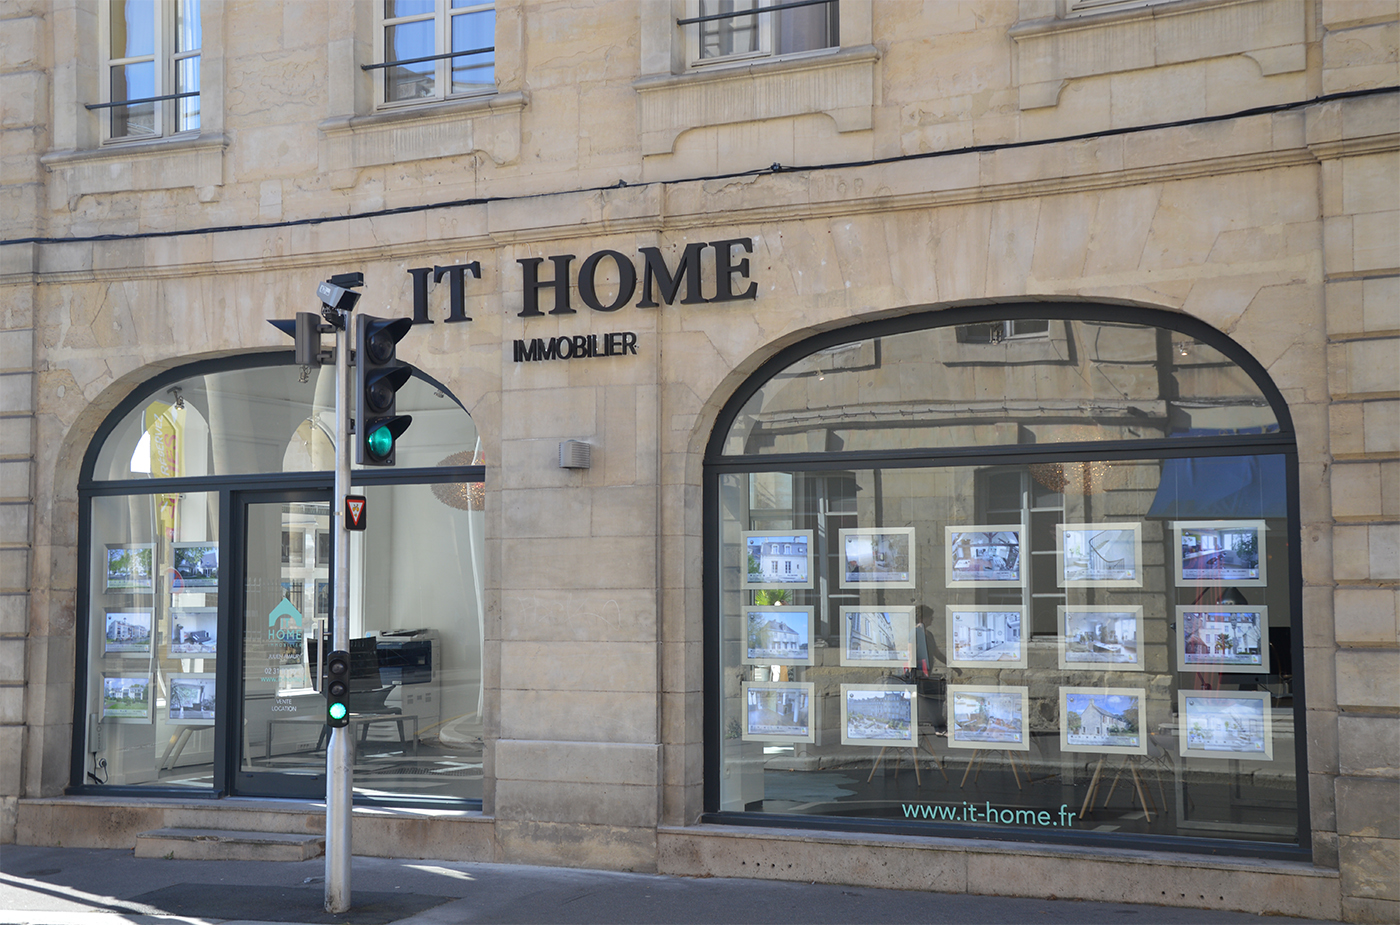 IT HOME Immobilier